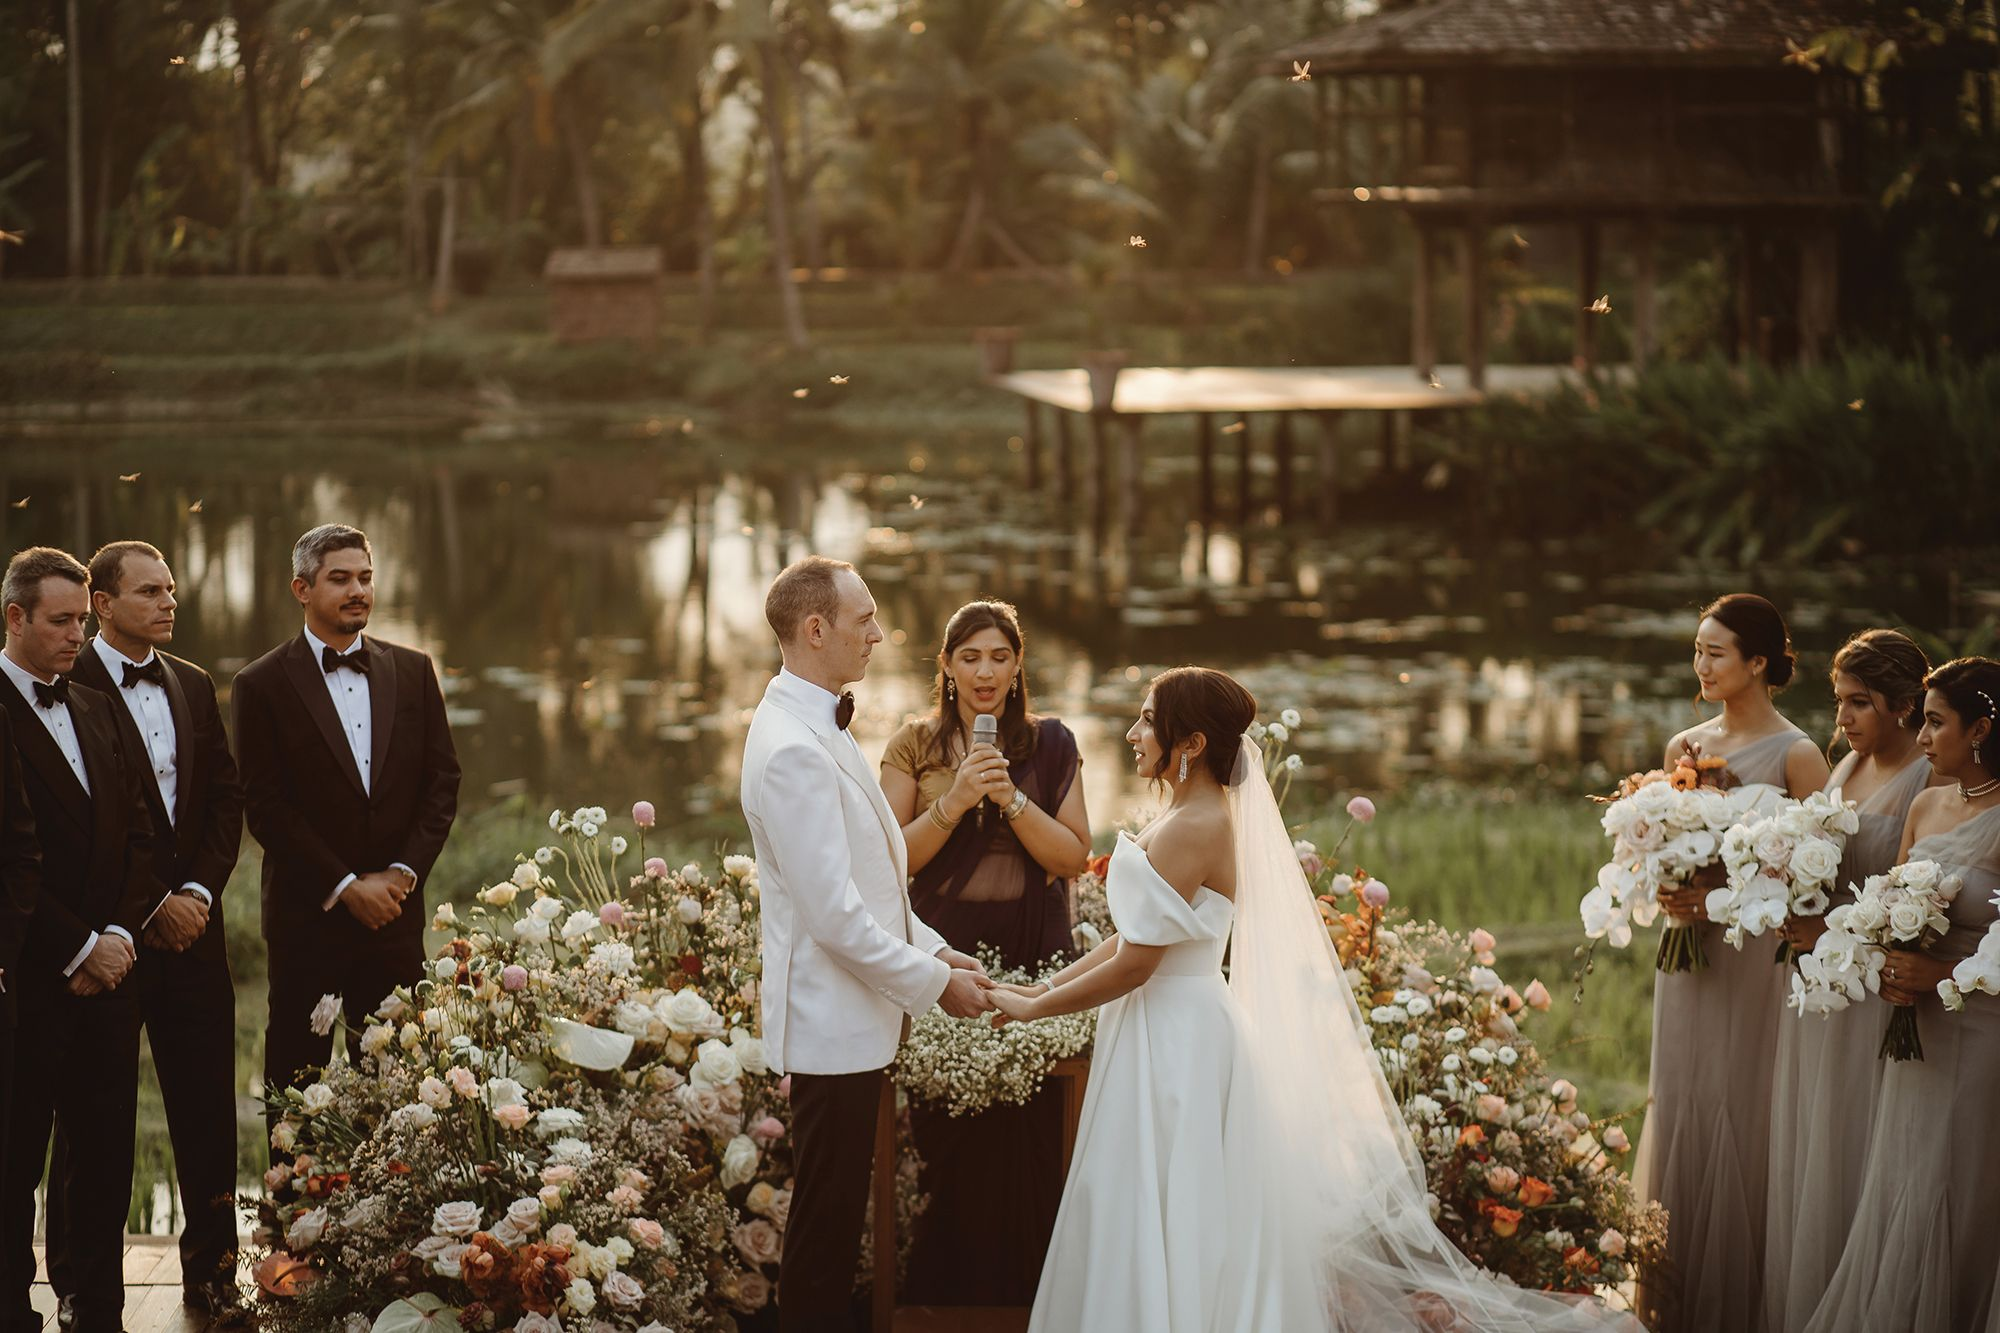 Wedded Bliss: Aaron Davis And Rina Hiranand Tie The Knot In Chiang Mai, Thailand